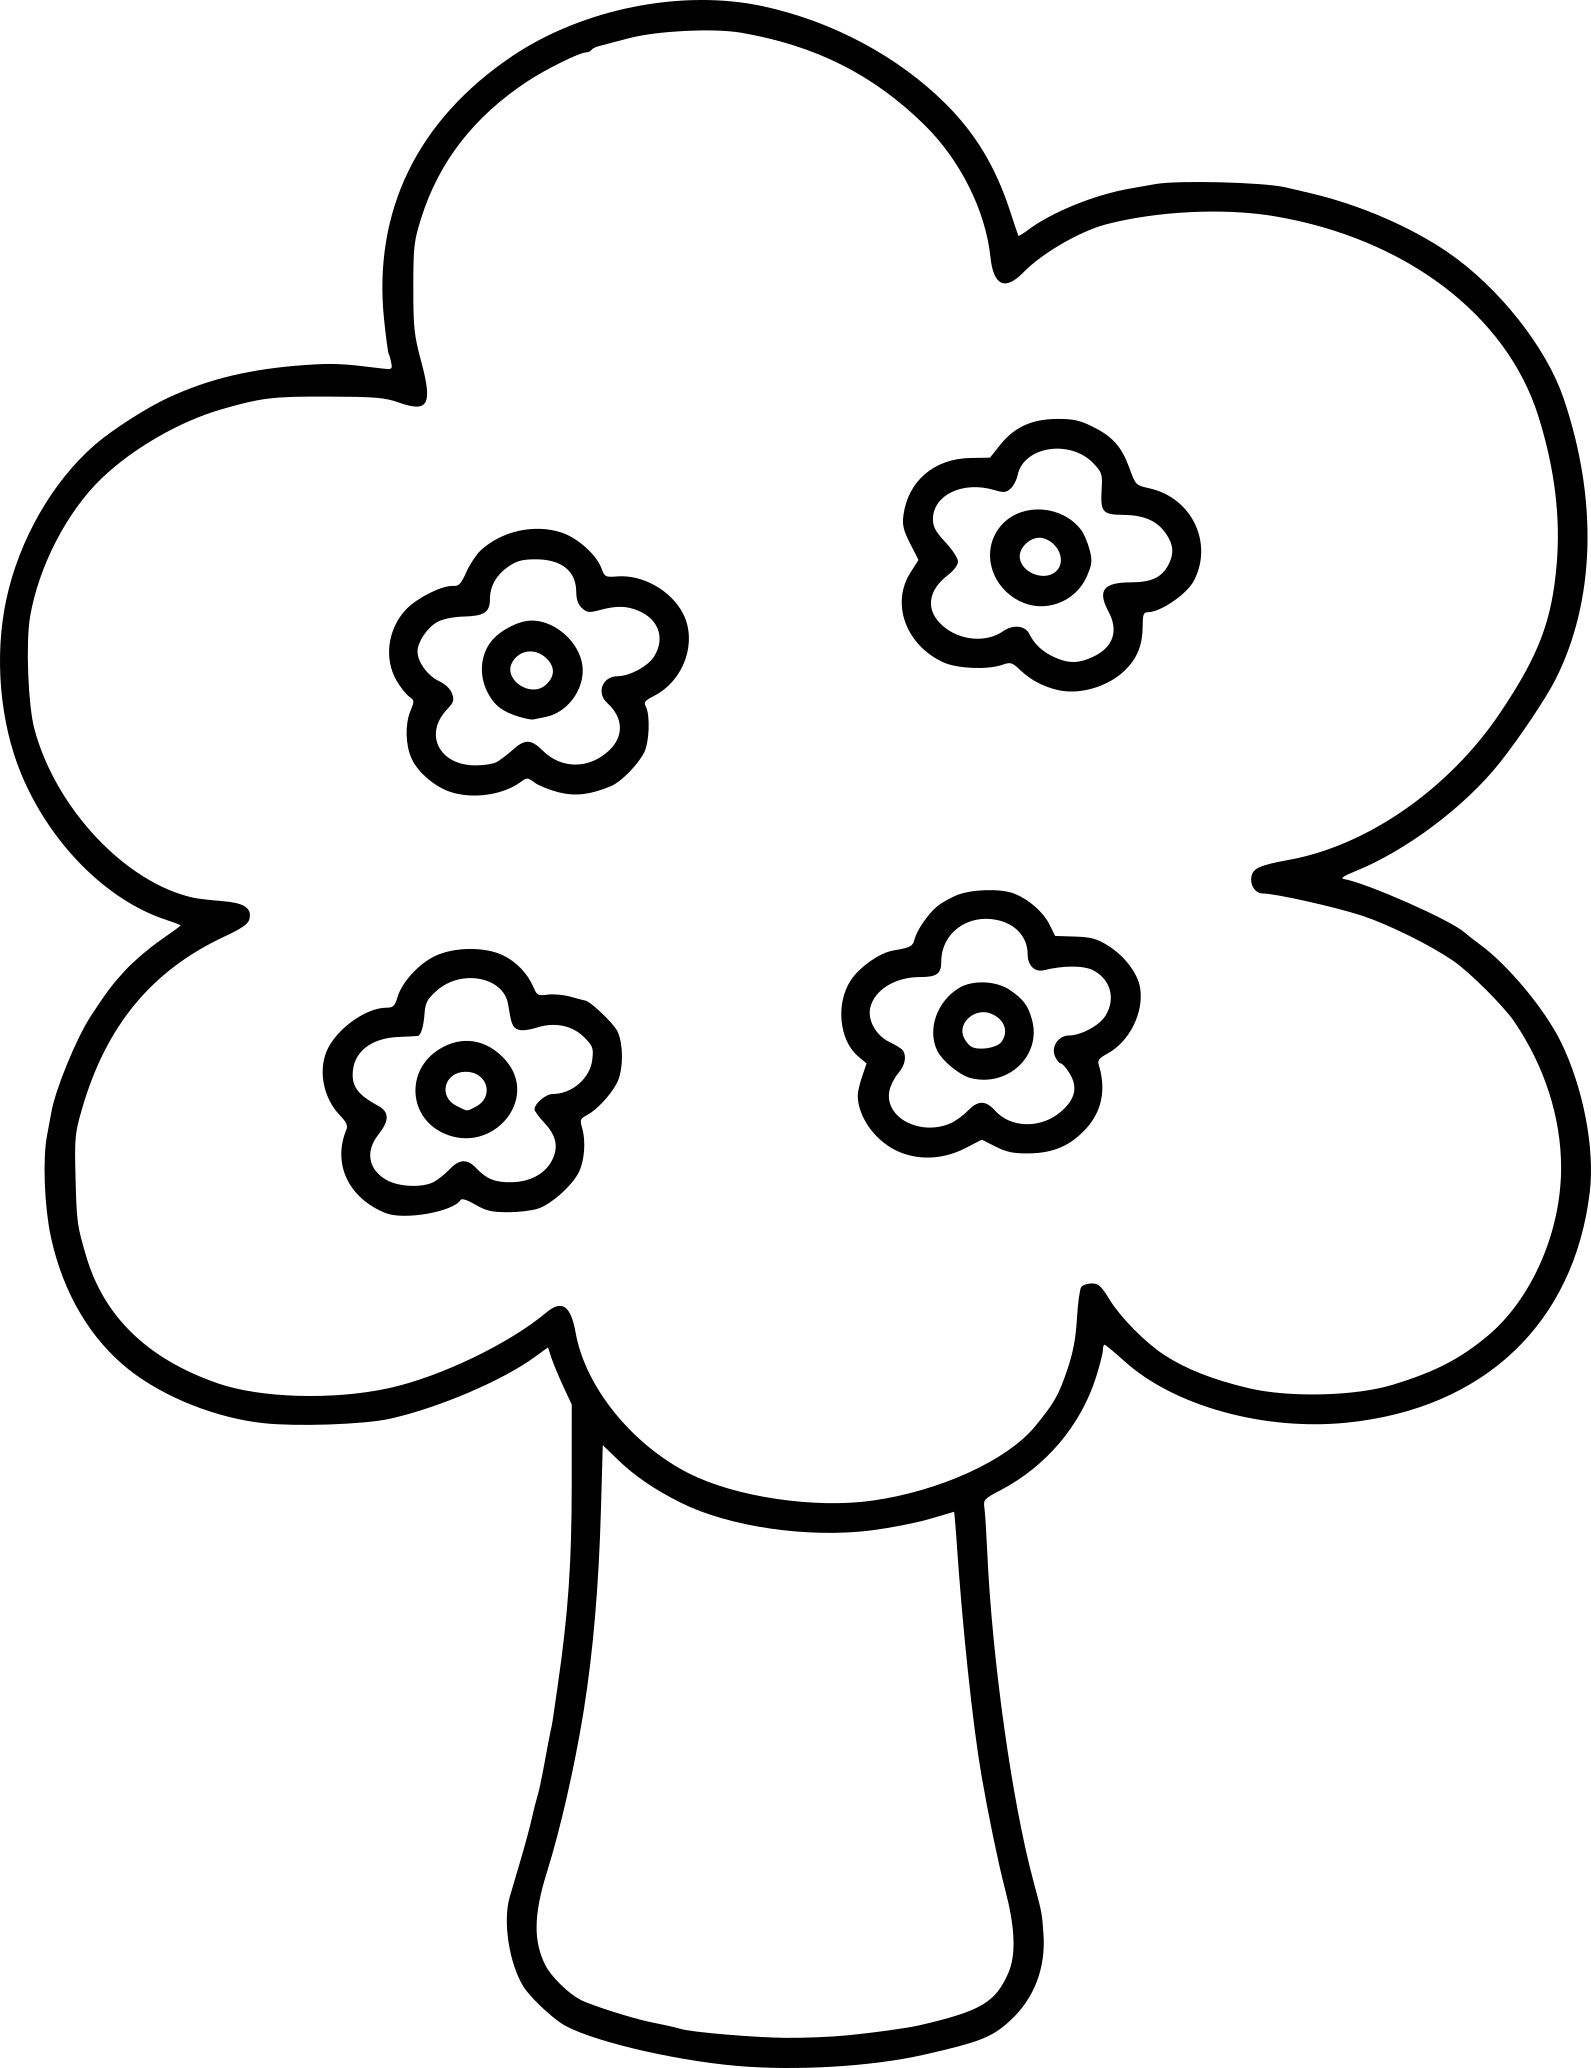 Coloriage arbre simple imprimer - Dessin arbre simple ...